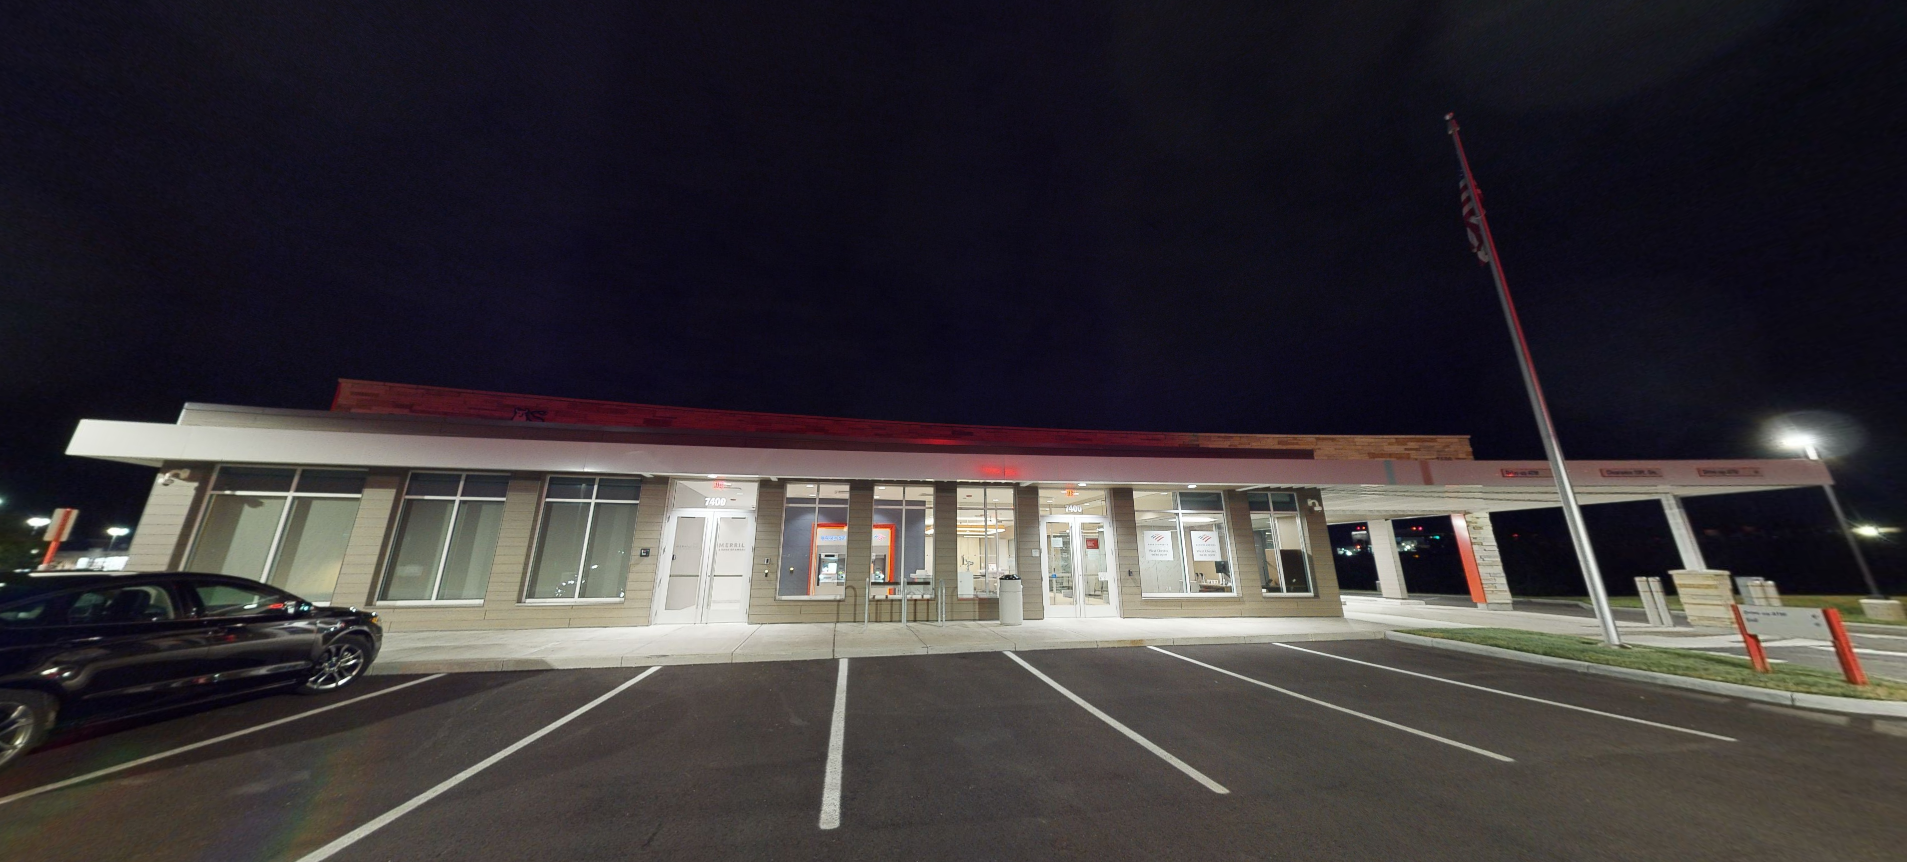 Bank of America financial center with drive-thru ATM | 7400 Tylersville Rd, West Chester, OH 45069